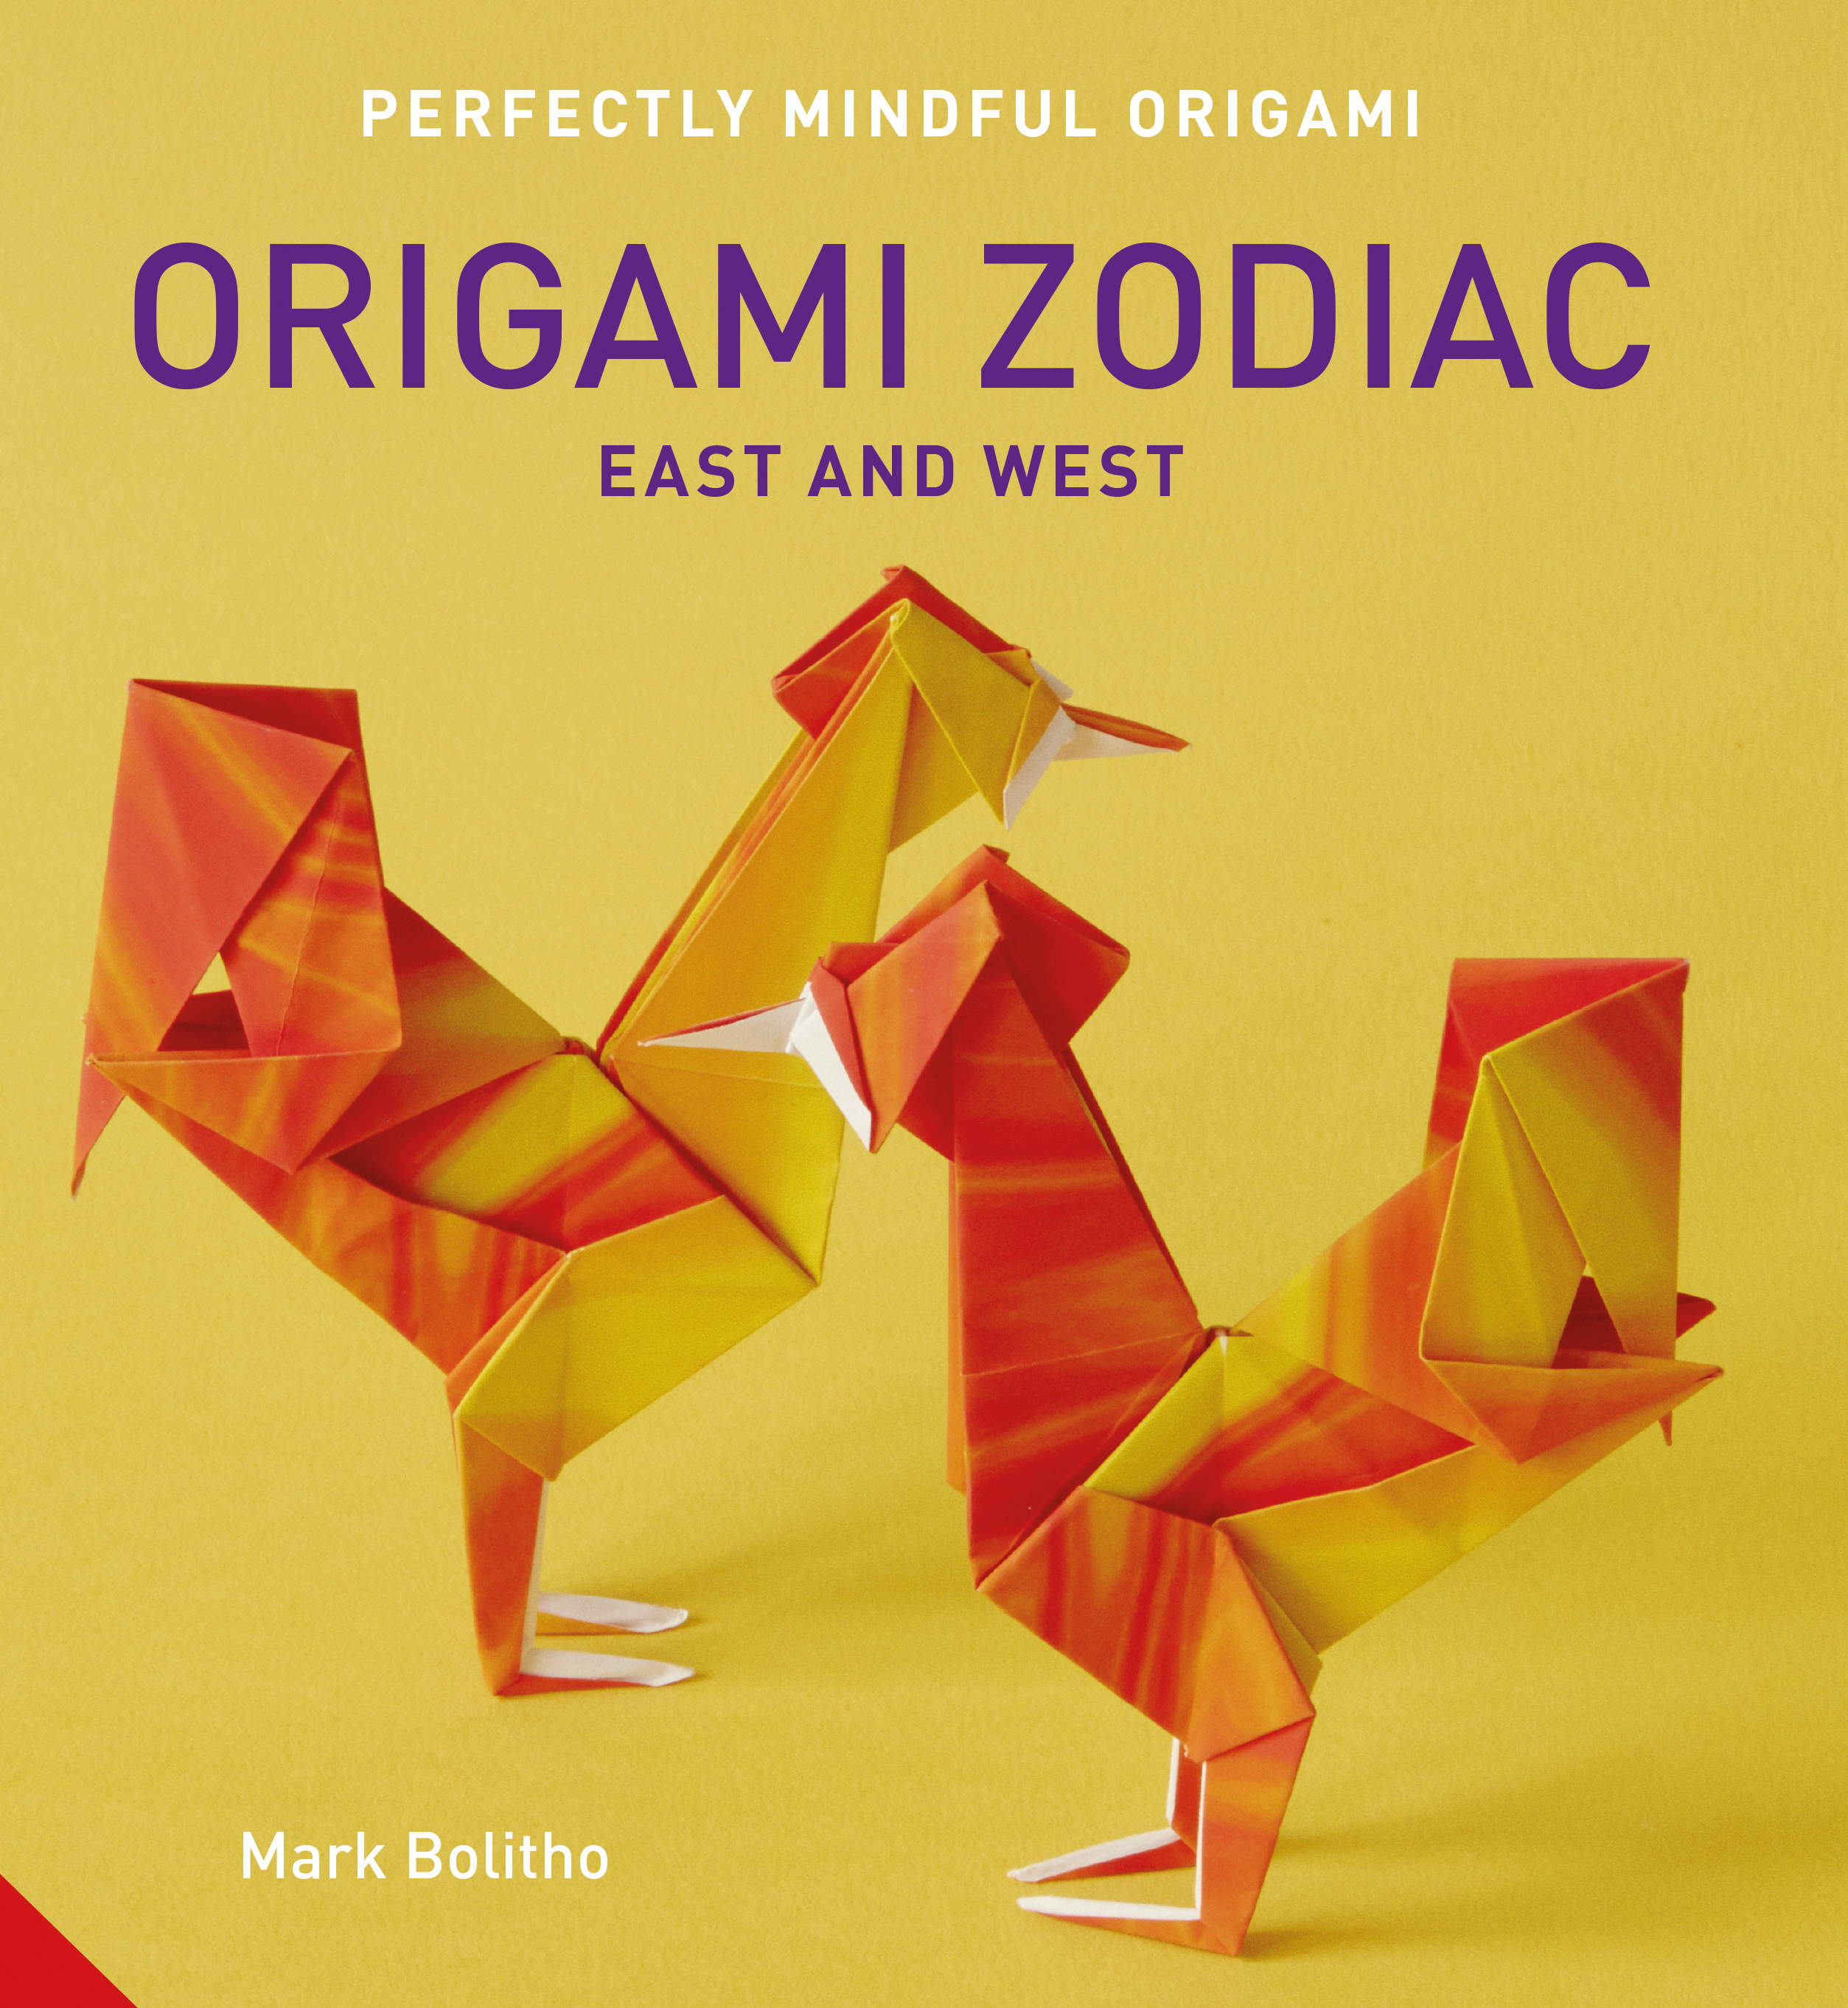 Perfectly mindful origami origami zodiac east and west mark bolitho 9781911127123 - Origami suspensie ...